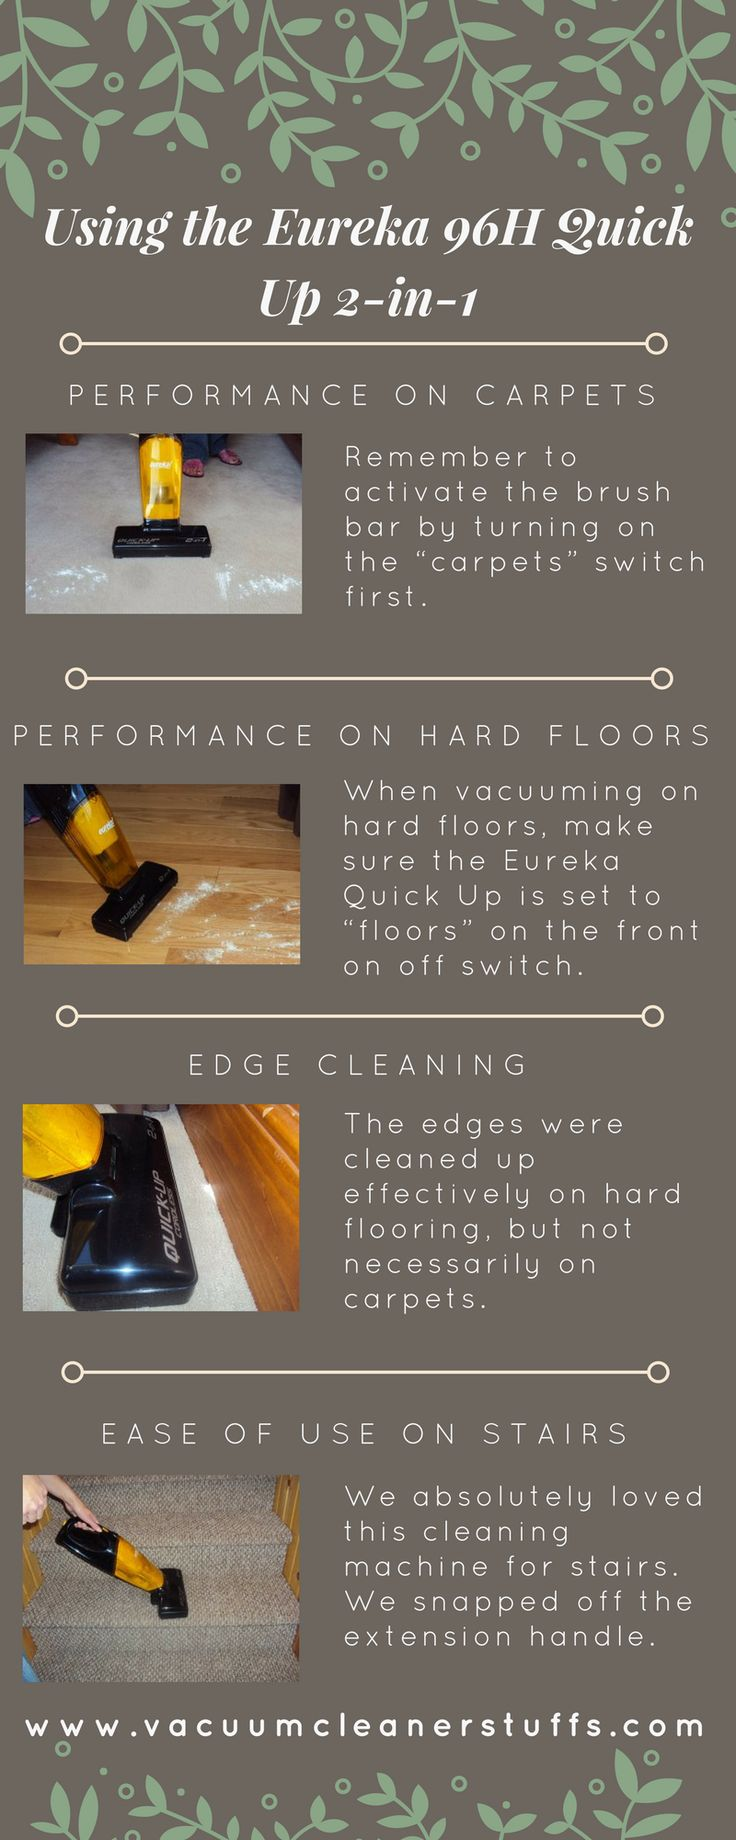 Performance of #EurekaQuickUp Cordless Vacuum  https://www.vacuumcleanerstuffs.com/eureka-quick-up-cordless-2-in-1-stick-vacuum-reviews/  #EurekaCordless Stick Vacuum is battery operated so you can charge it overnight and in morning it will be ready to use. It is 2 in 1 stick #vacuum so you can easily clean your carpet, floor, and stairs too.